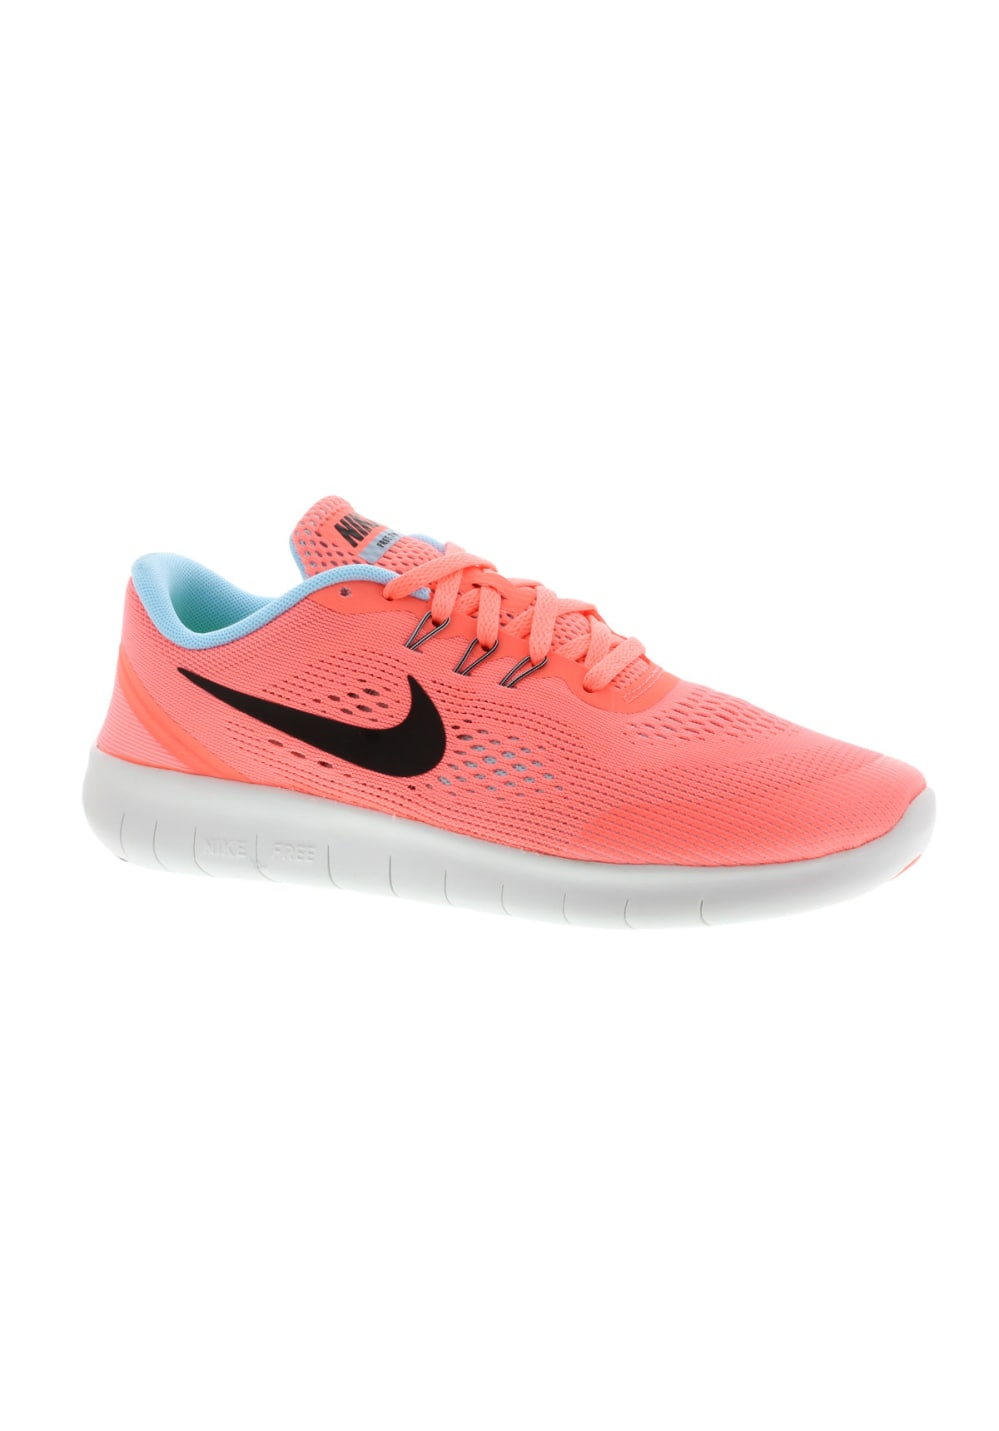 8e7f4bec0c56 Nike Free RN GS Girls - Running shoes - Pink